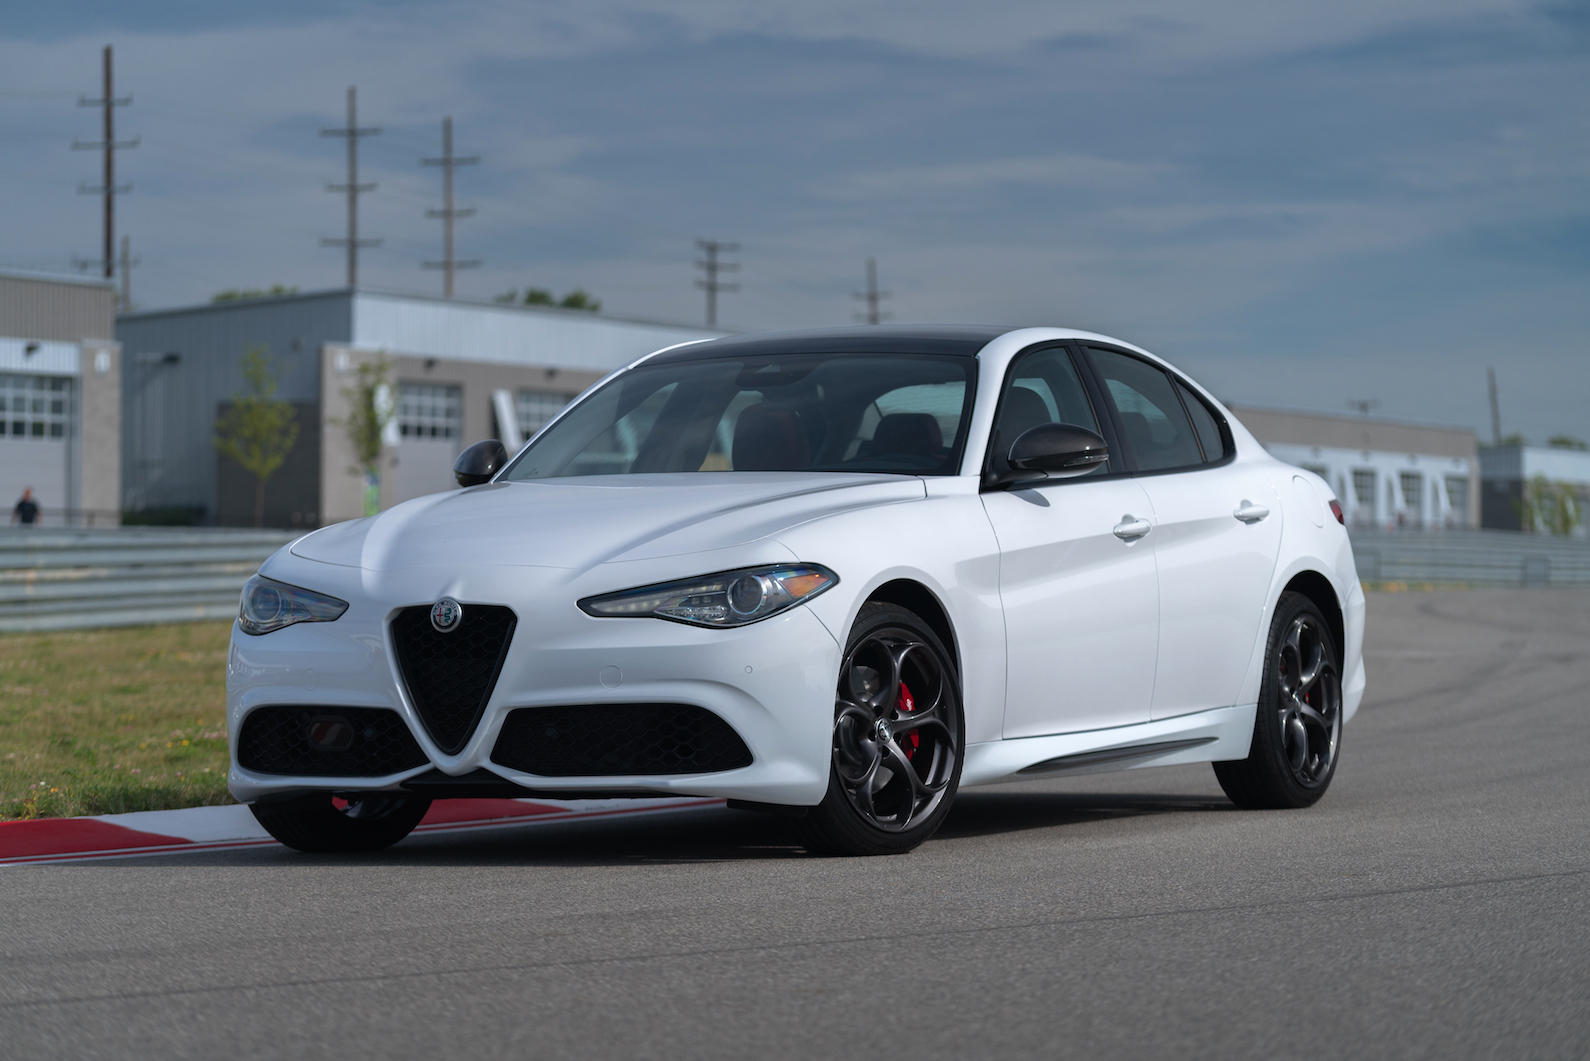 2019 Maserati And Alfa Romeo Dynamic Driving Experience Automotive Umbrella Dubbed The Suv For S Curves By Marketing Folks At Stelvio Felt Great On Pavement Even When Weighted Down Multiple